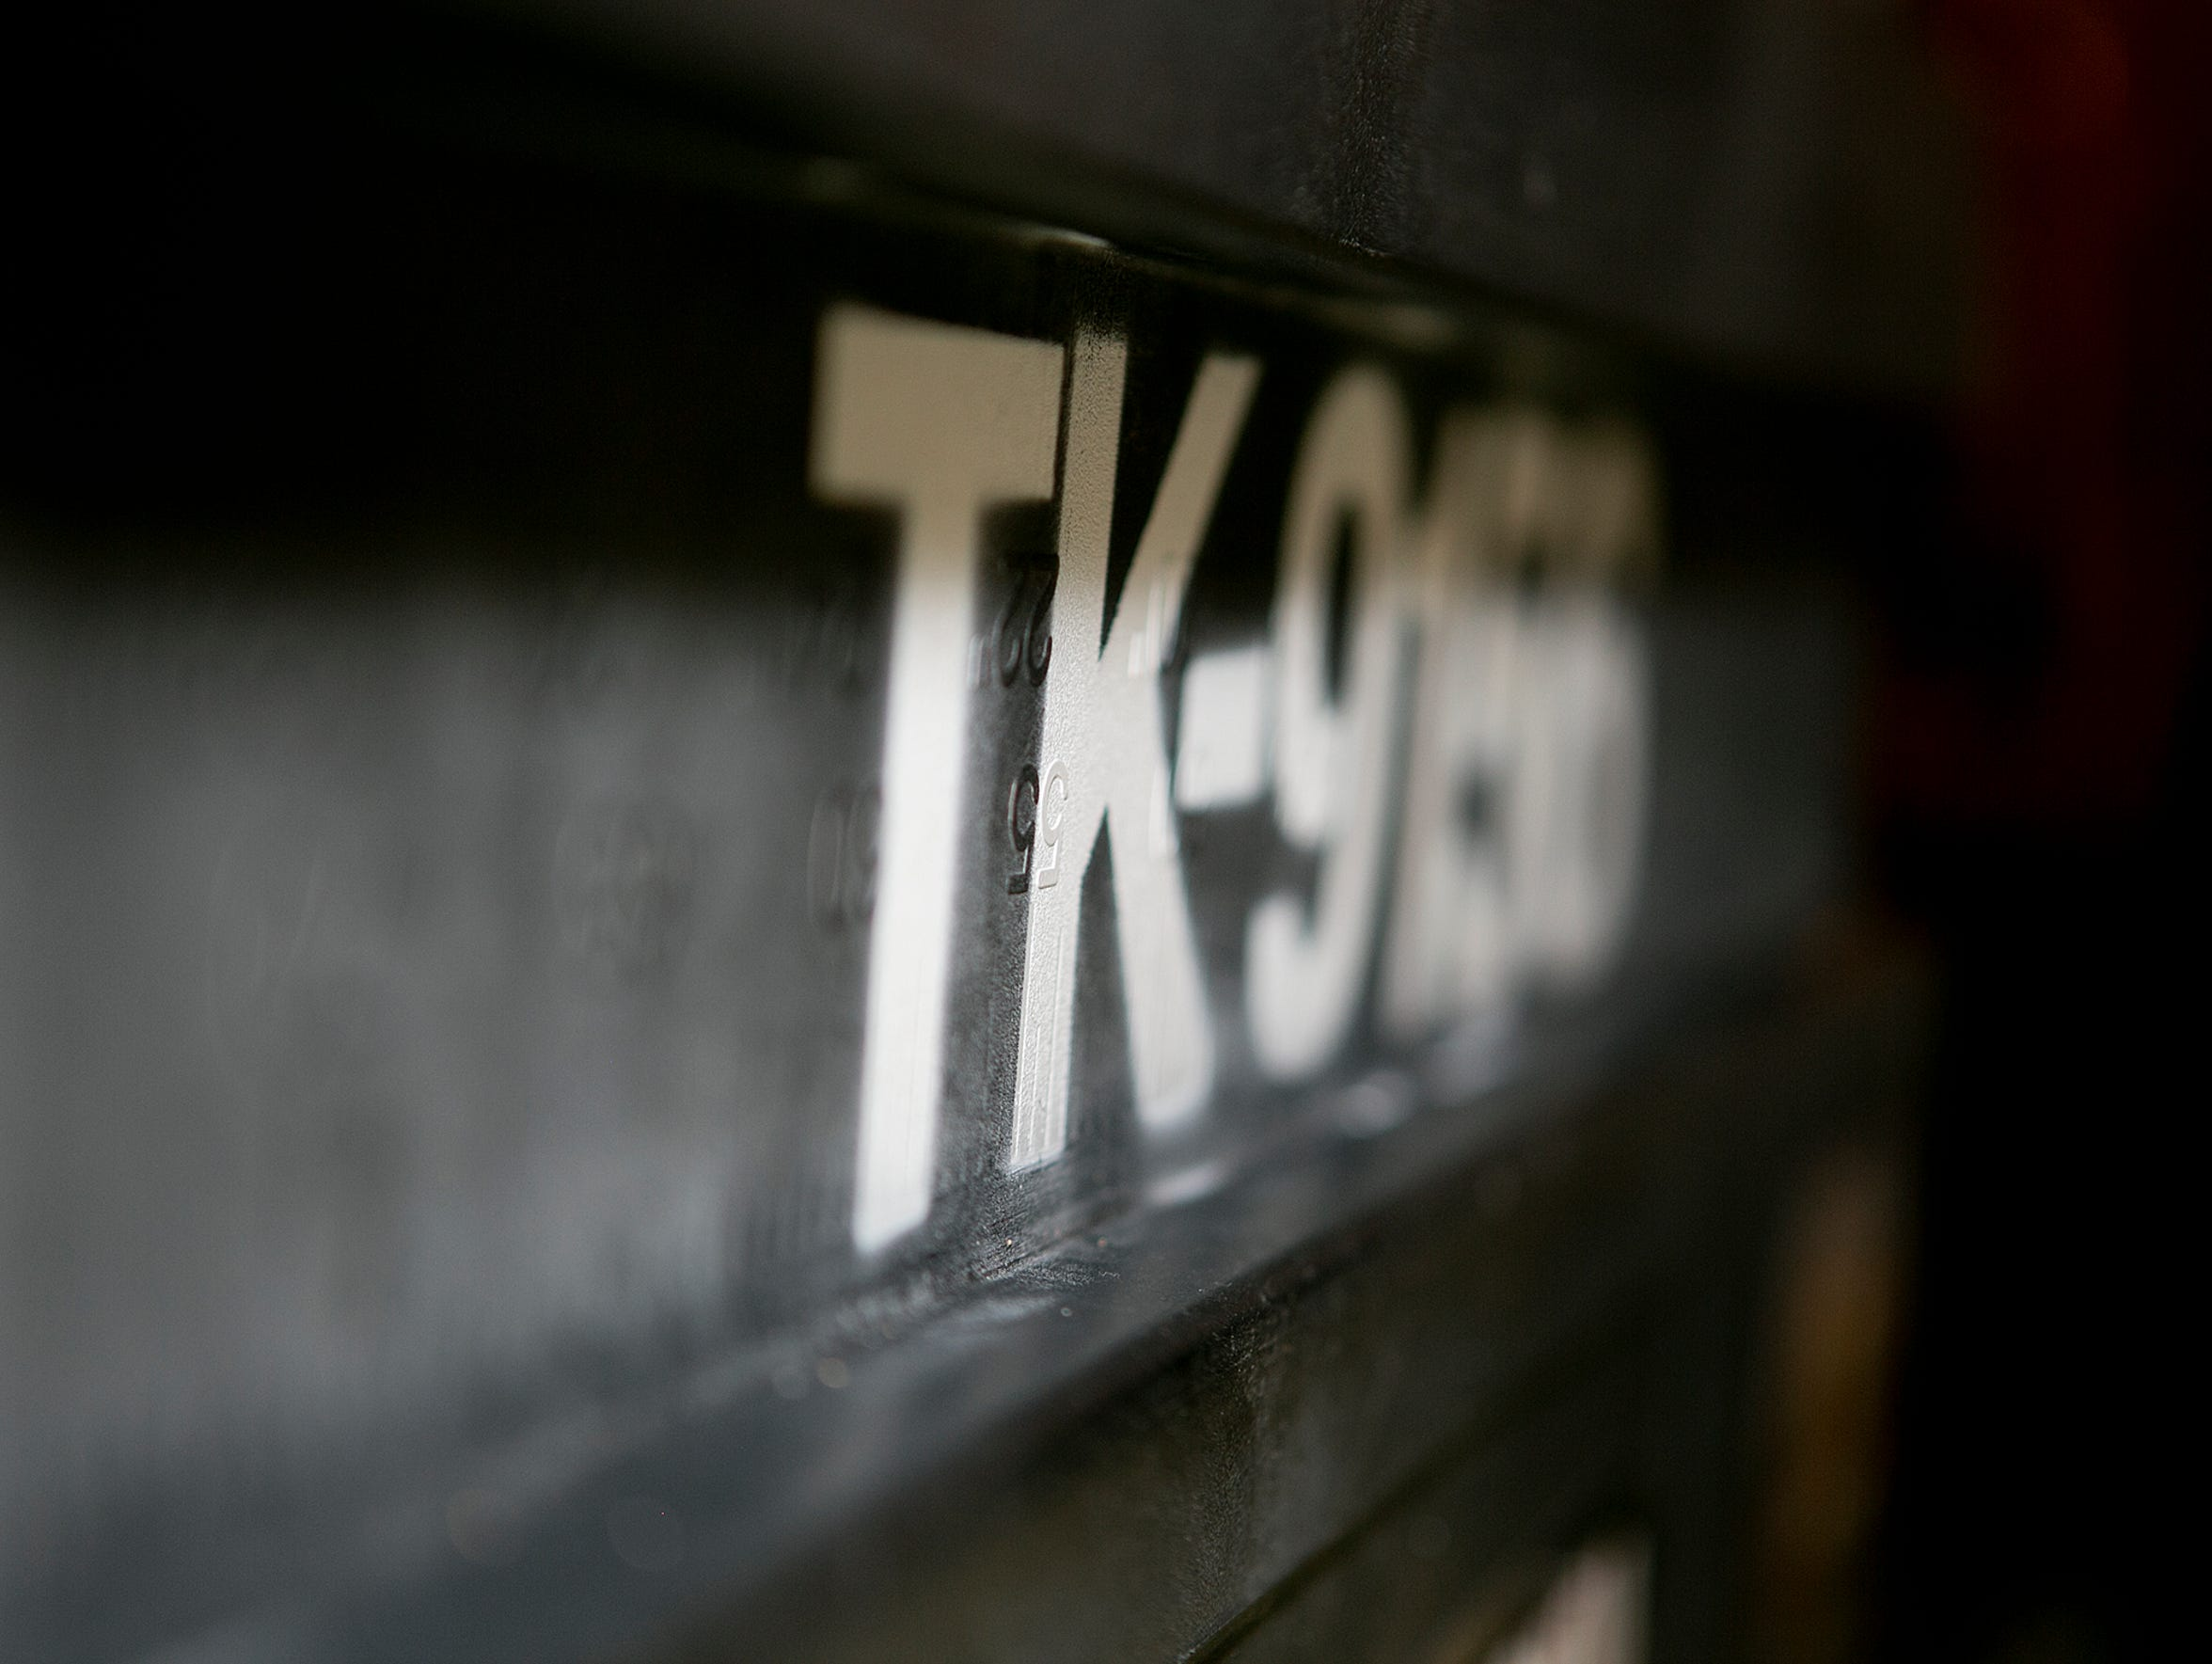 Frank Wileman's Stormtrooper name, TK-9156, is displayed